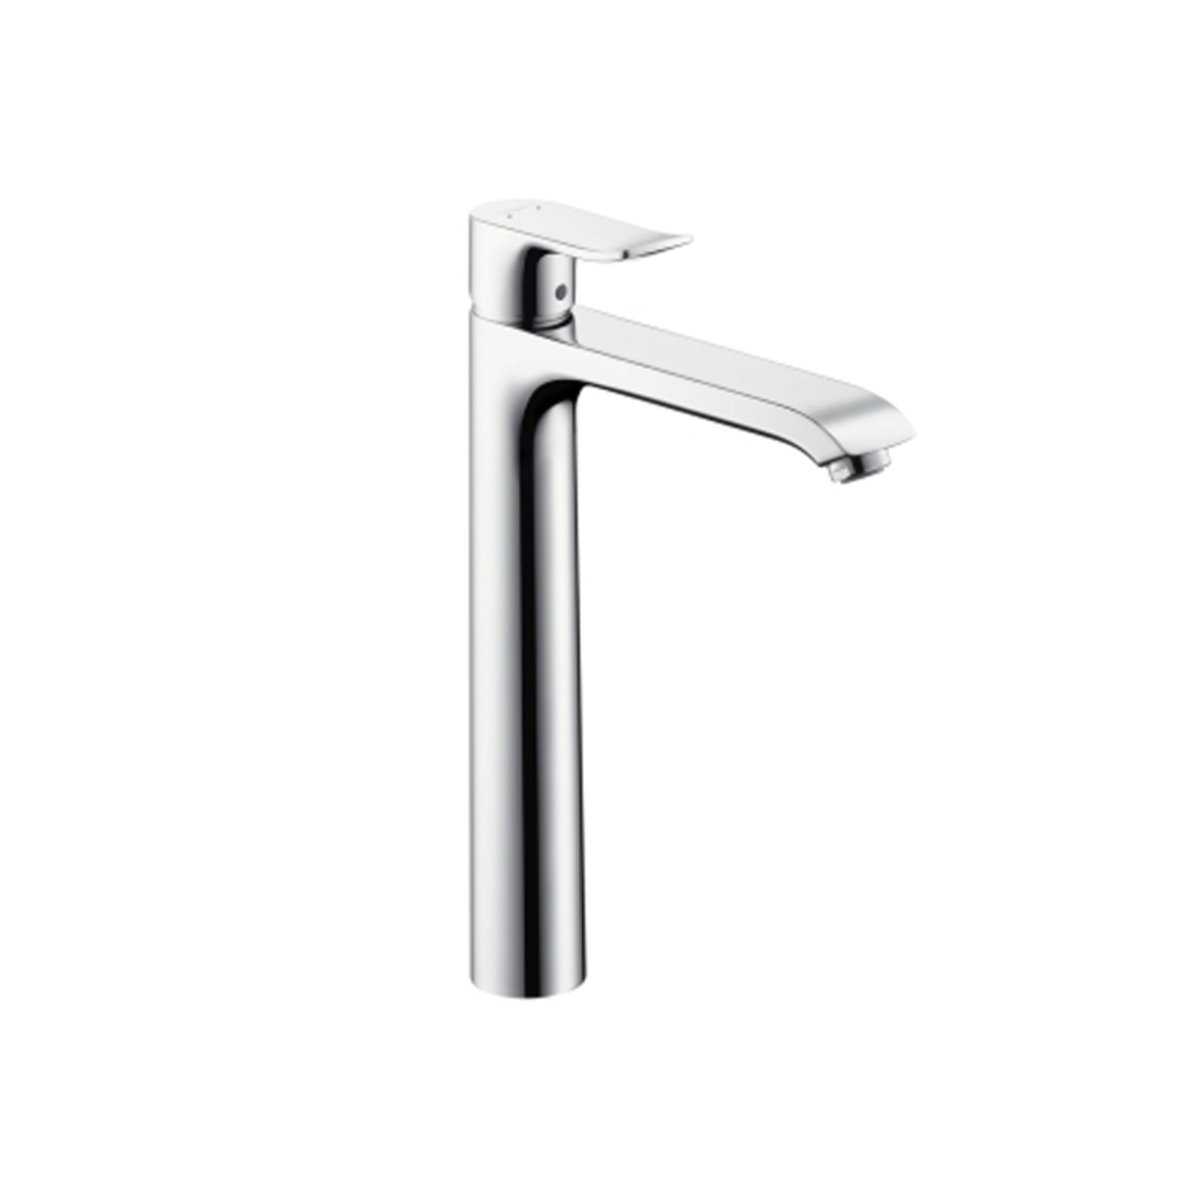 hansgrohe metris robinet pour lavabo 1 trou highriser 260 chrome 31184000. Black Bedroom Furniture Sets. Home Design Ideas